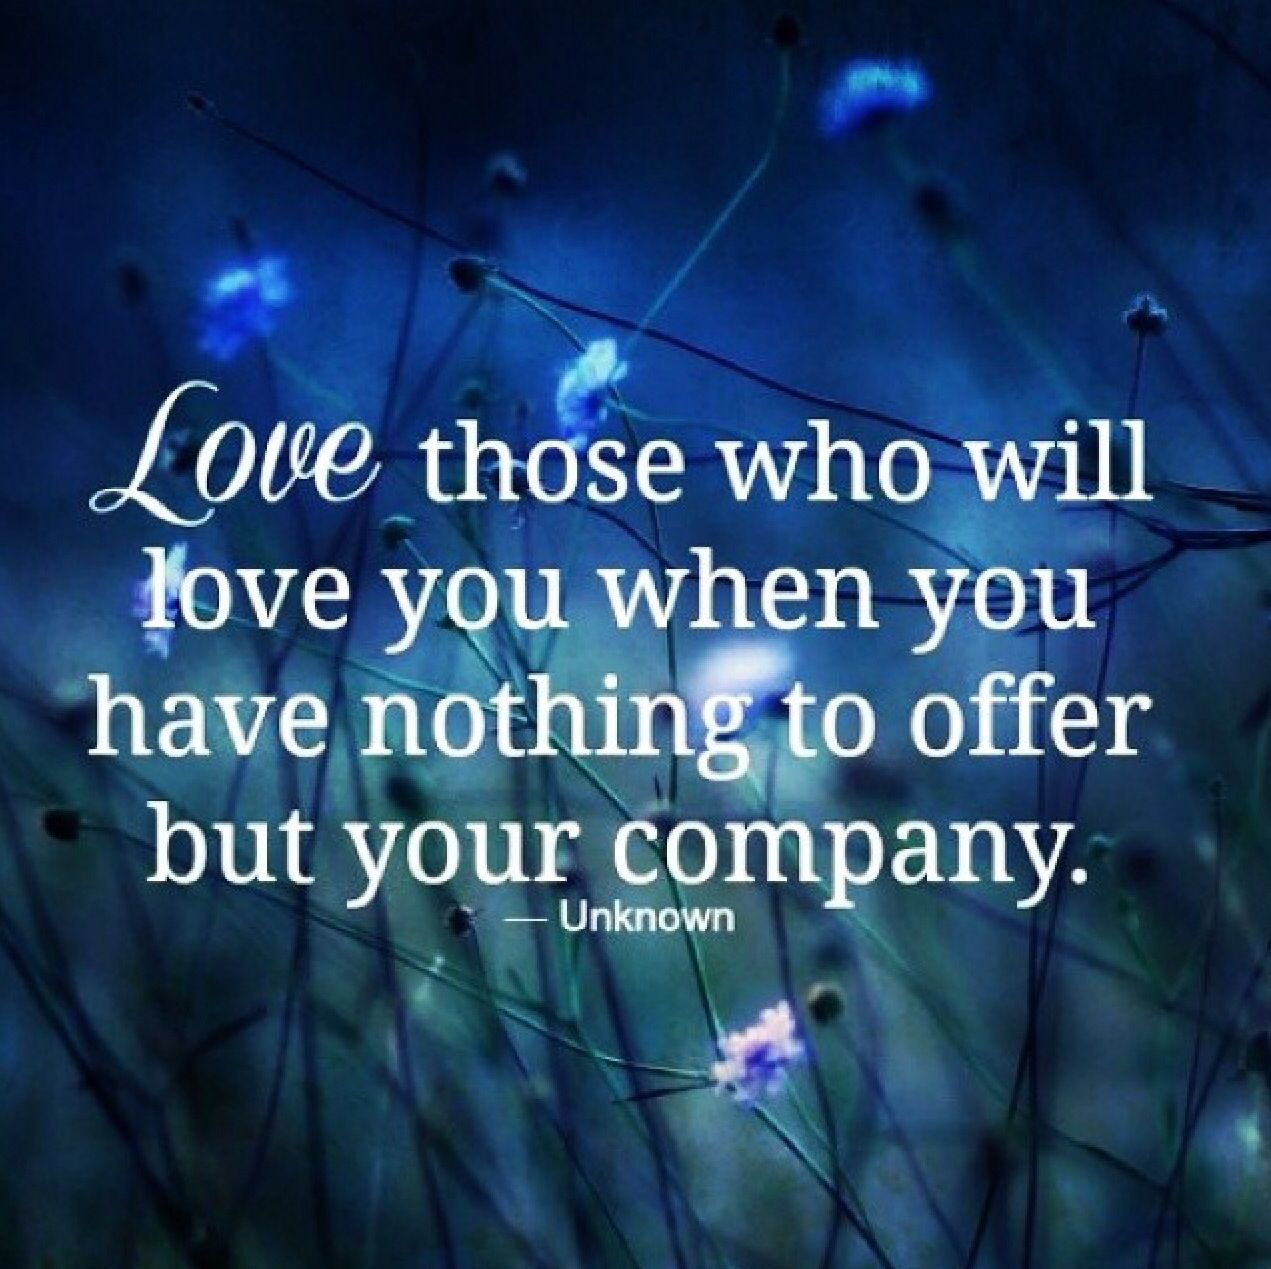 """They say :""""Love those who will love you when you have nothing to offer but your company"""" #quote #words #lessons"""